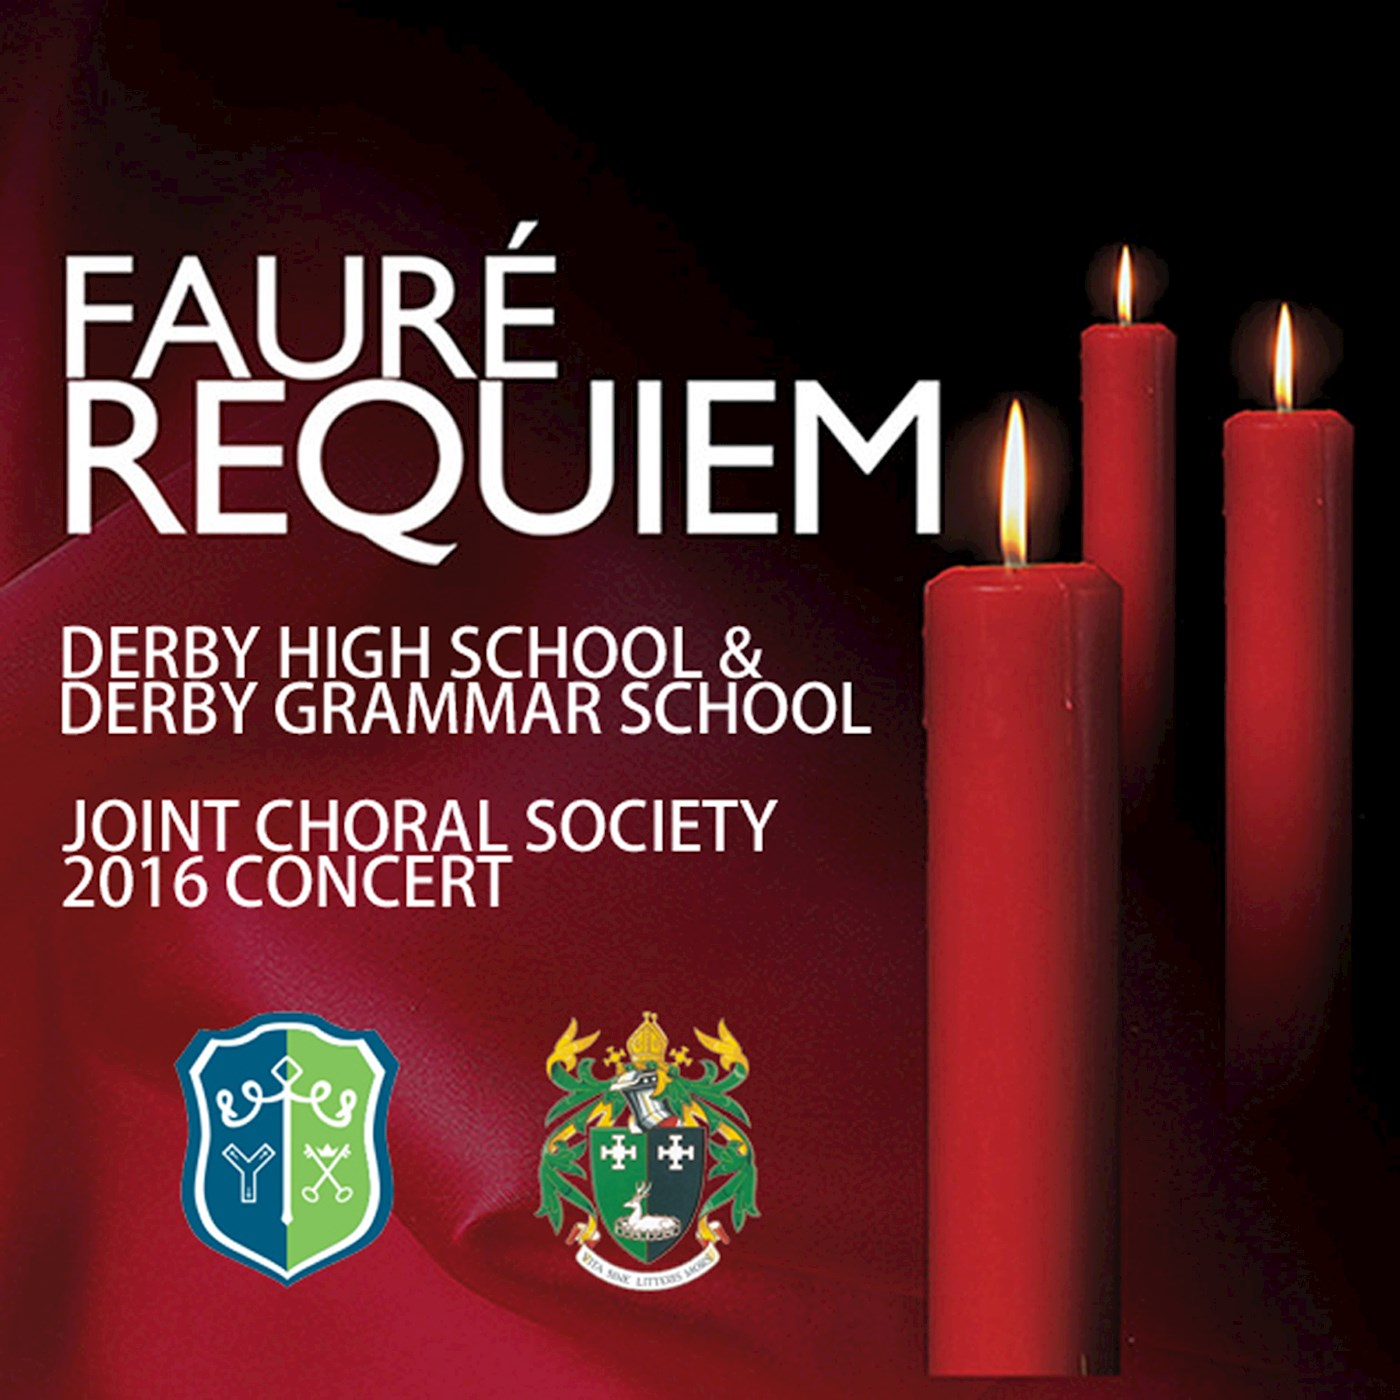 Joint Choral Society Concert 2016